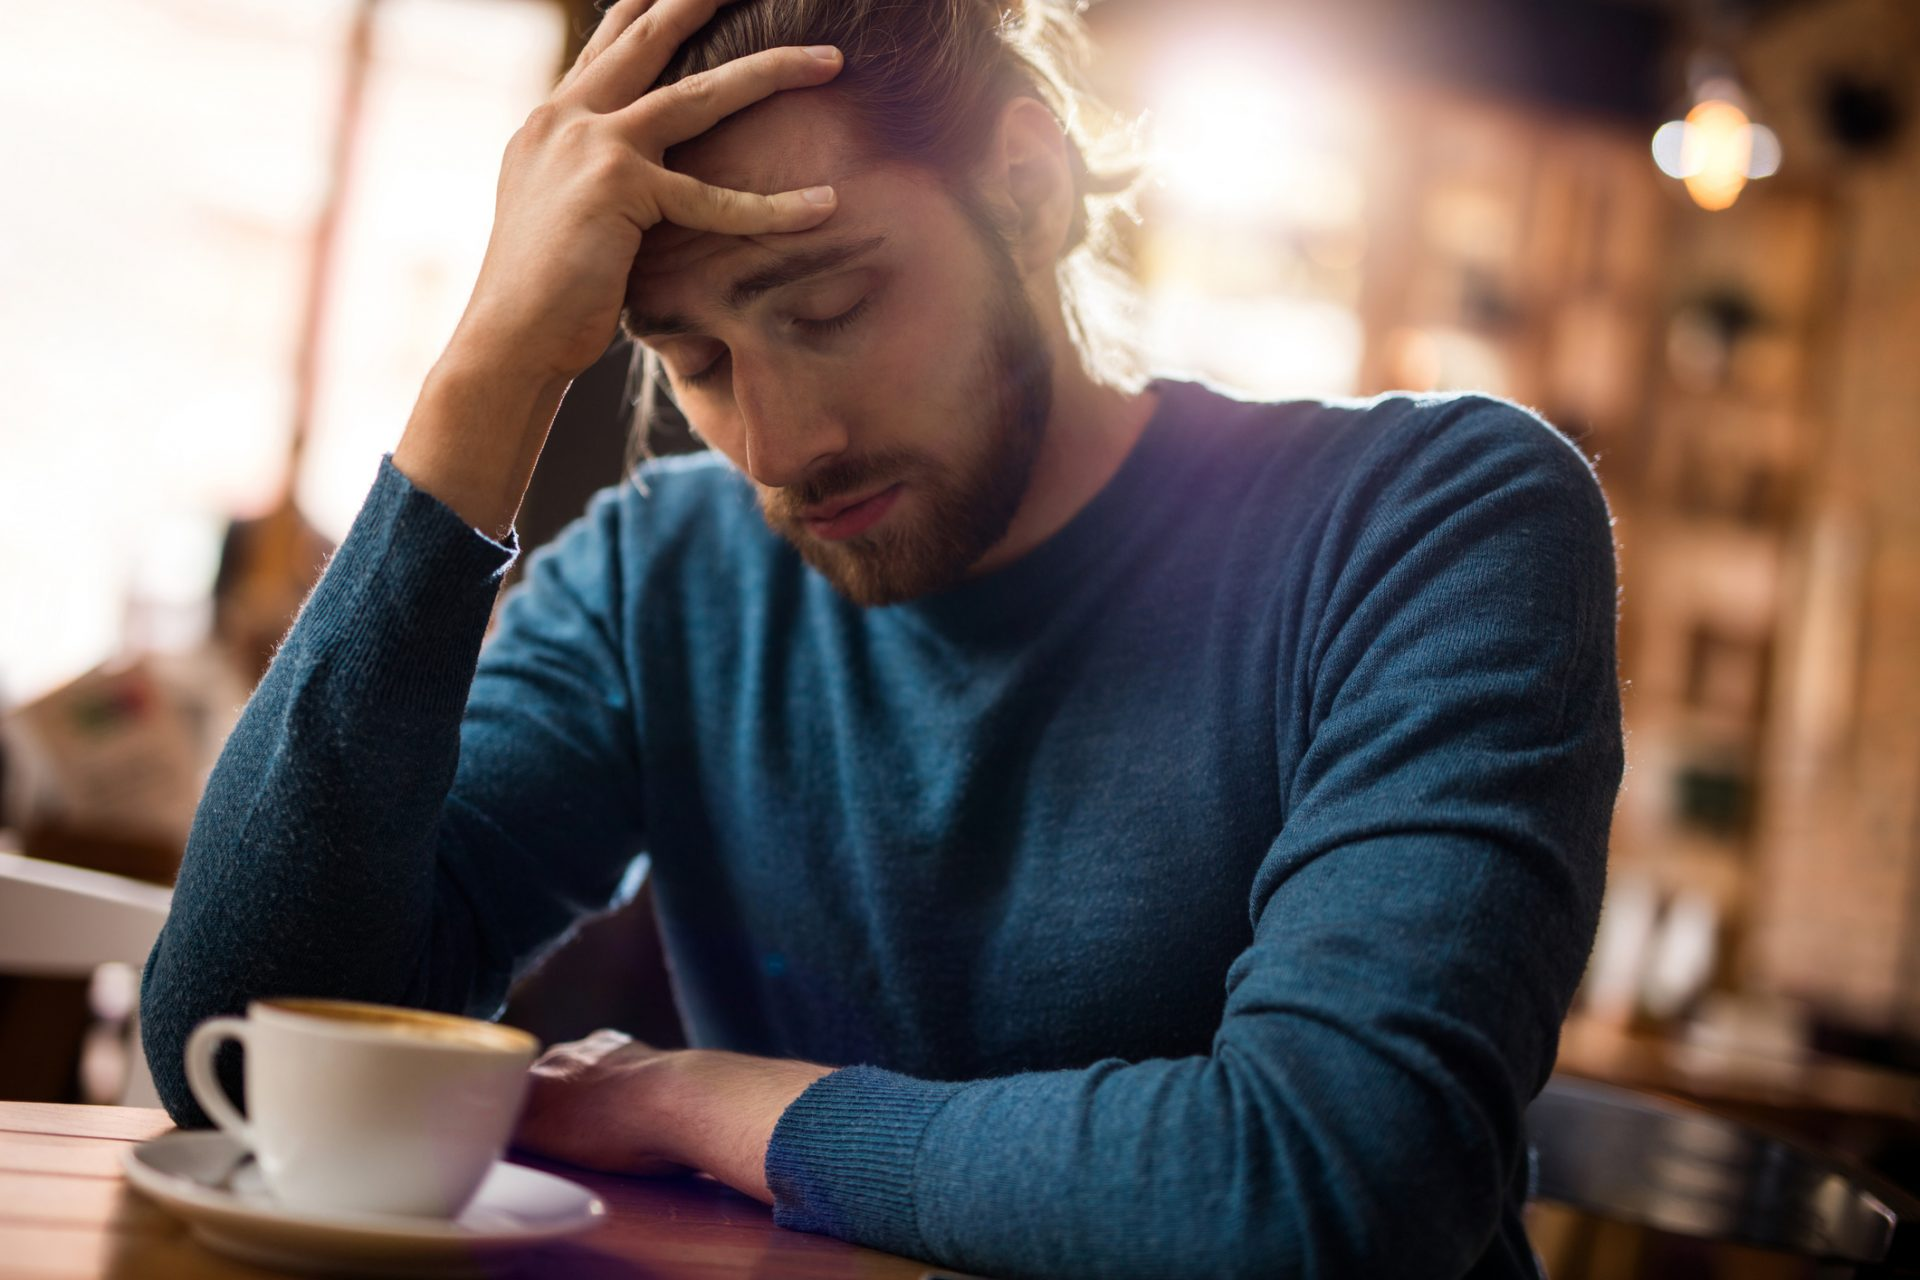 Stressed man holding his head in pain in a cafe.